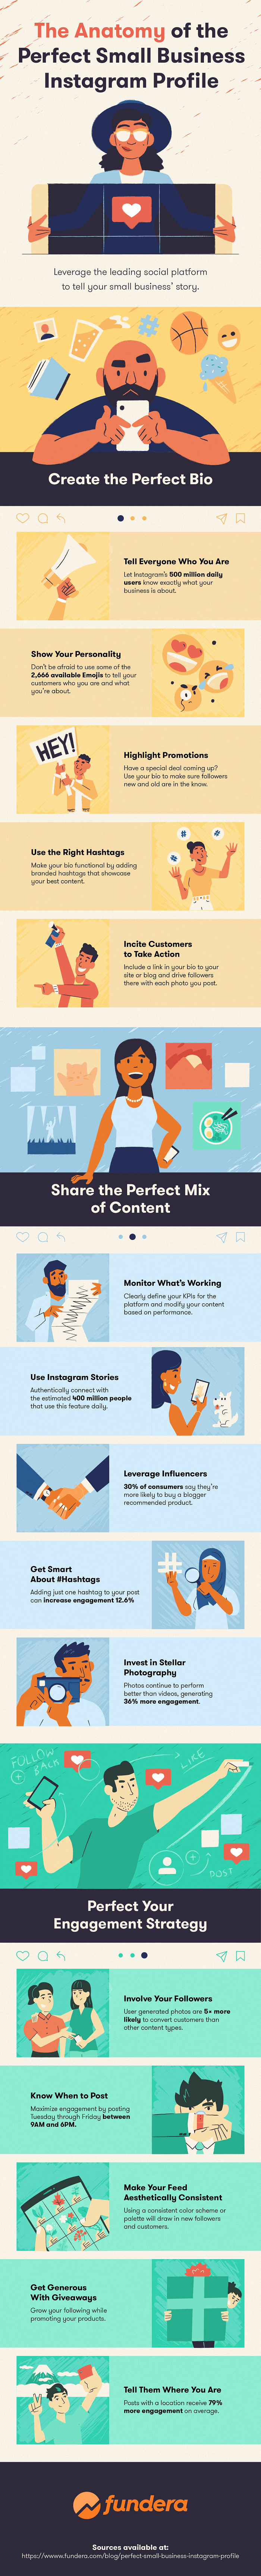 Infographic outlines a range of Instagram best practices and tips